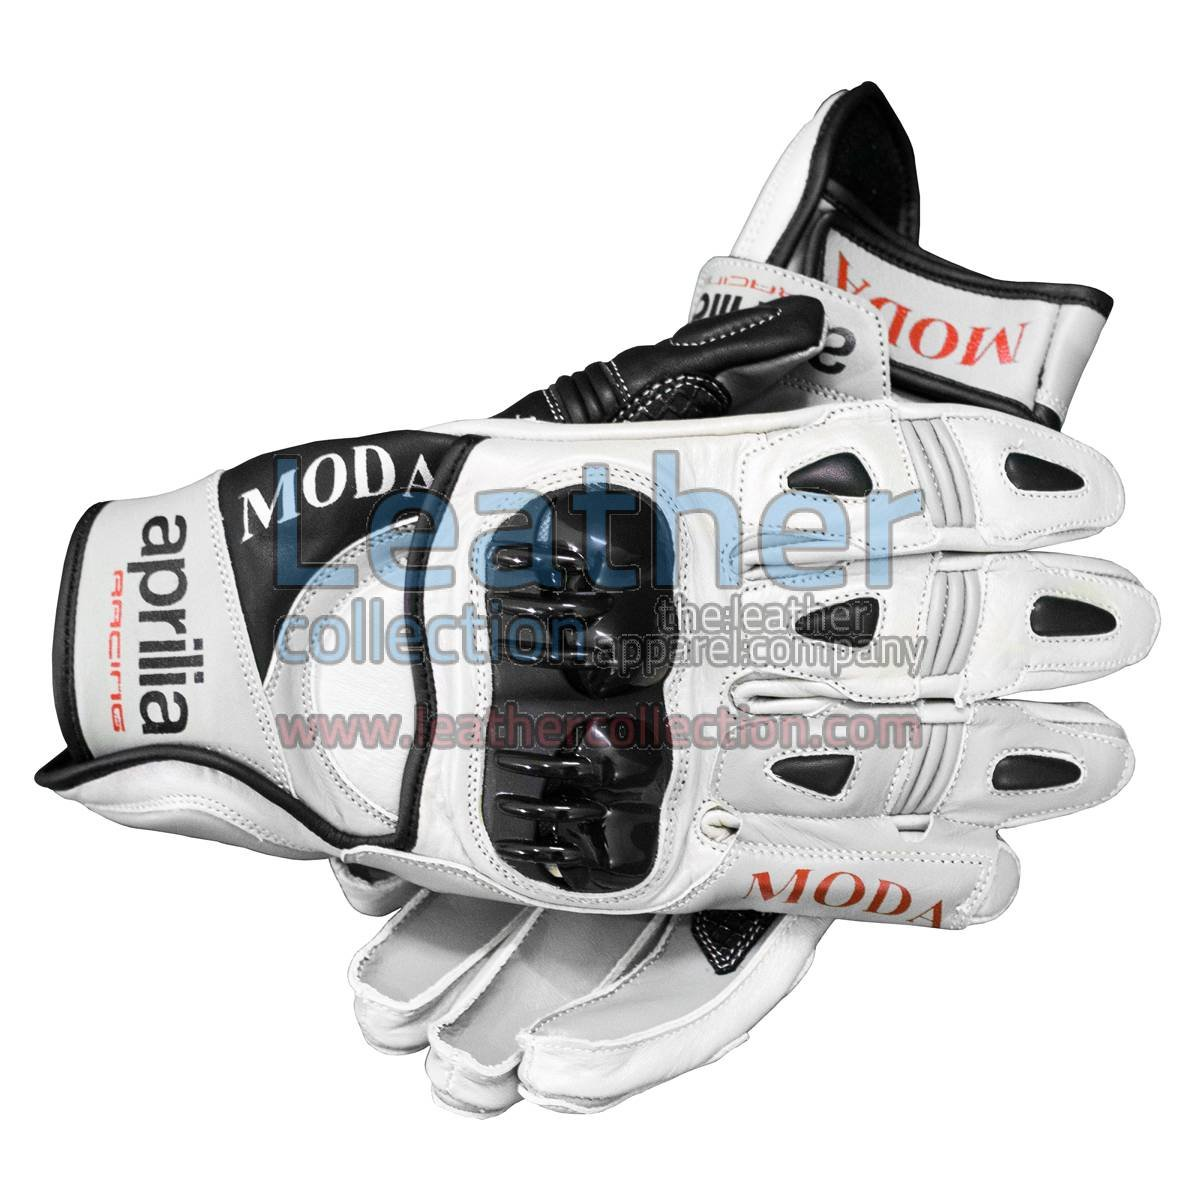 Aprilia Short Leather Riding Gloves